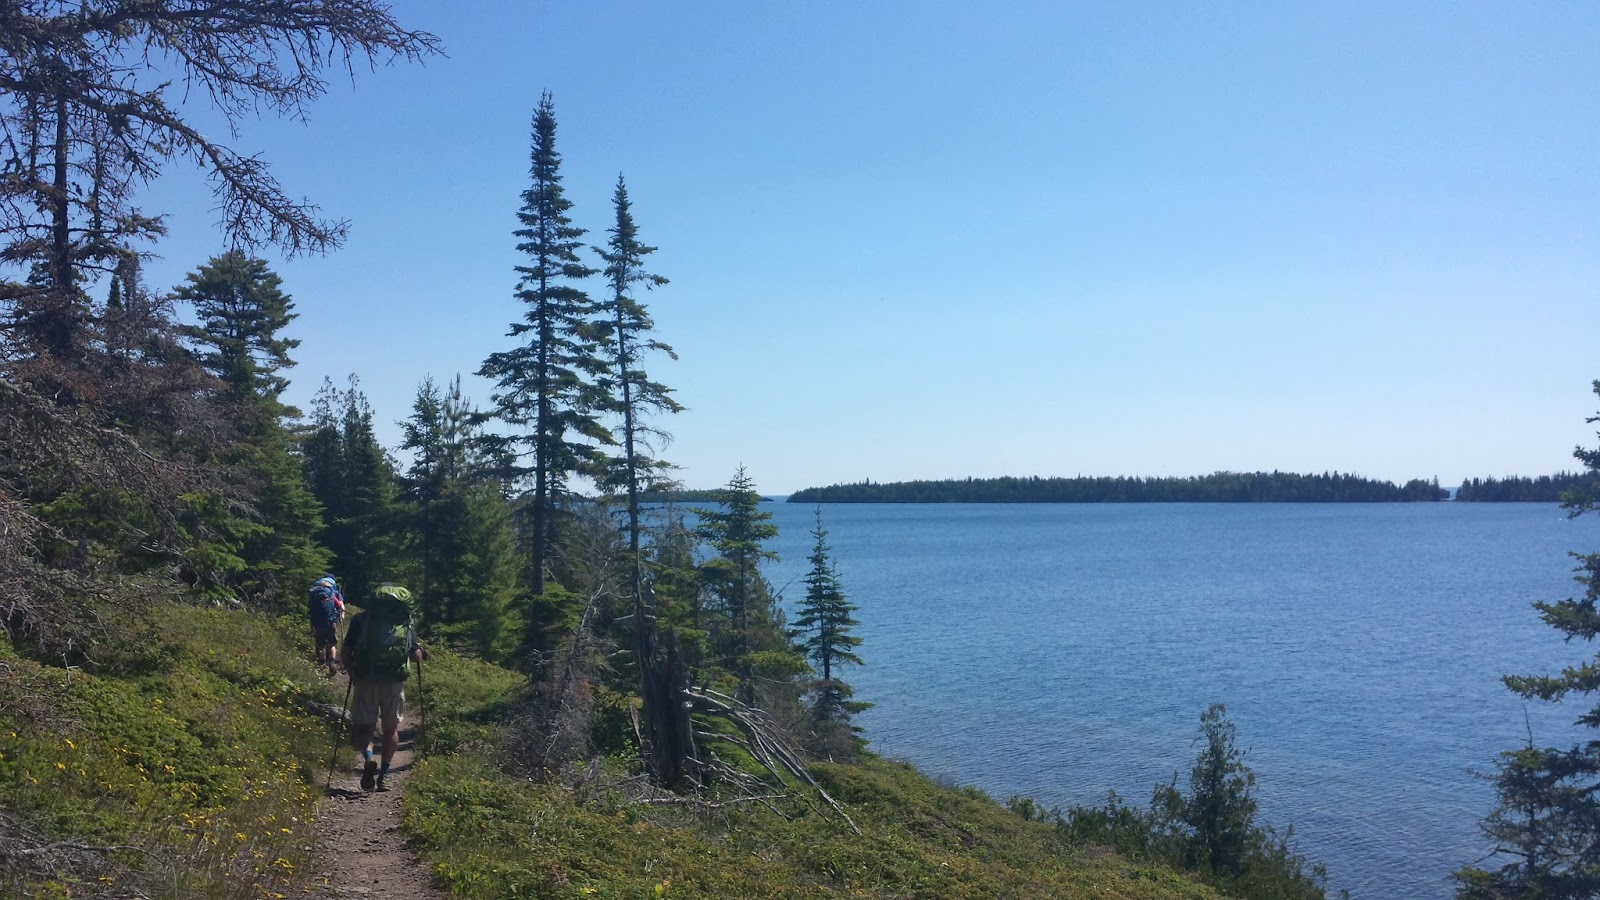 isle royale Isle royale is one of the most unusual national parks, not just in michigan or the midwest but in the country it is one of the smallest at only 210 square miles and has one of the lowest numbers of visitors, a mere 17,000.